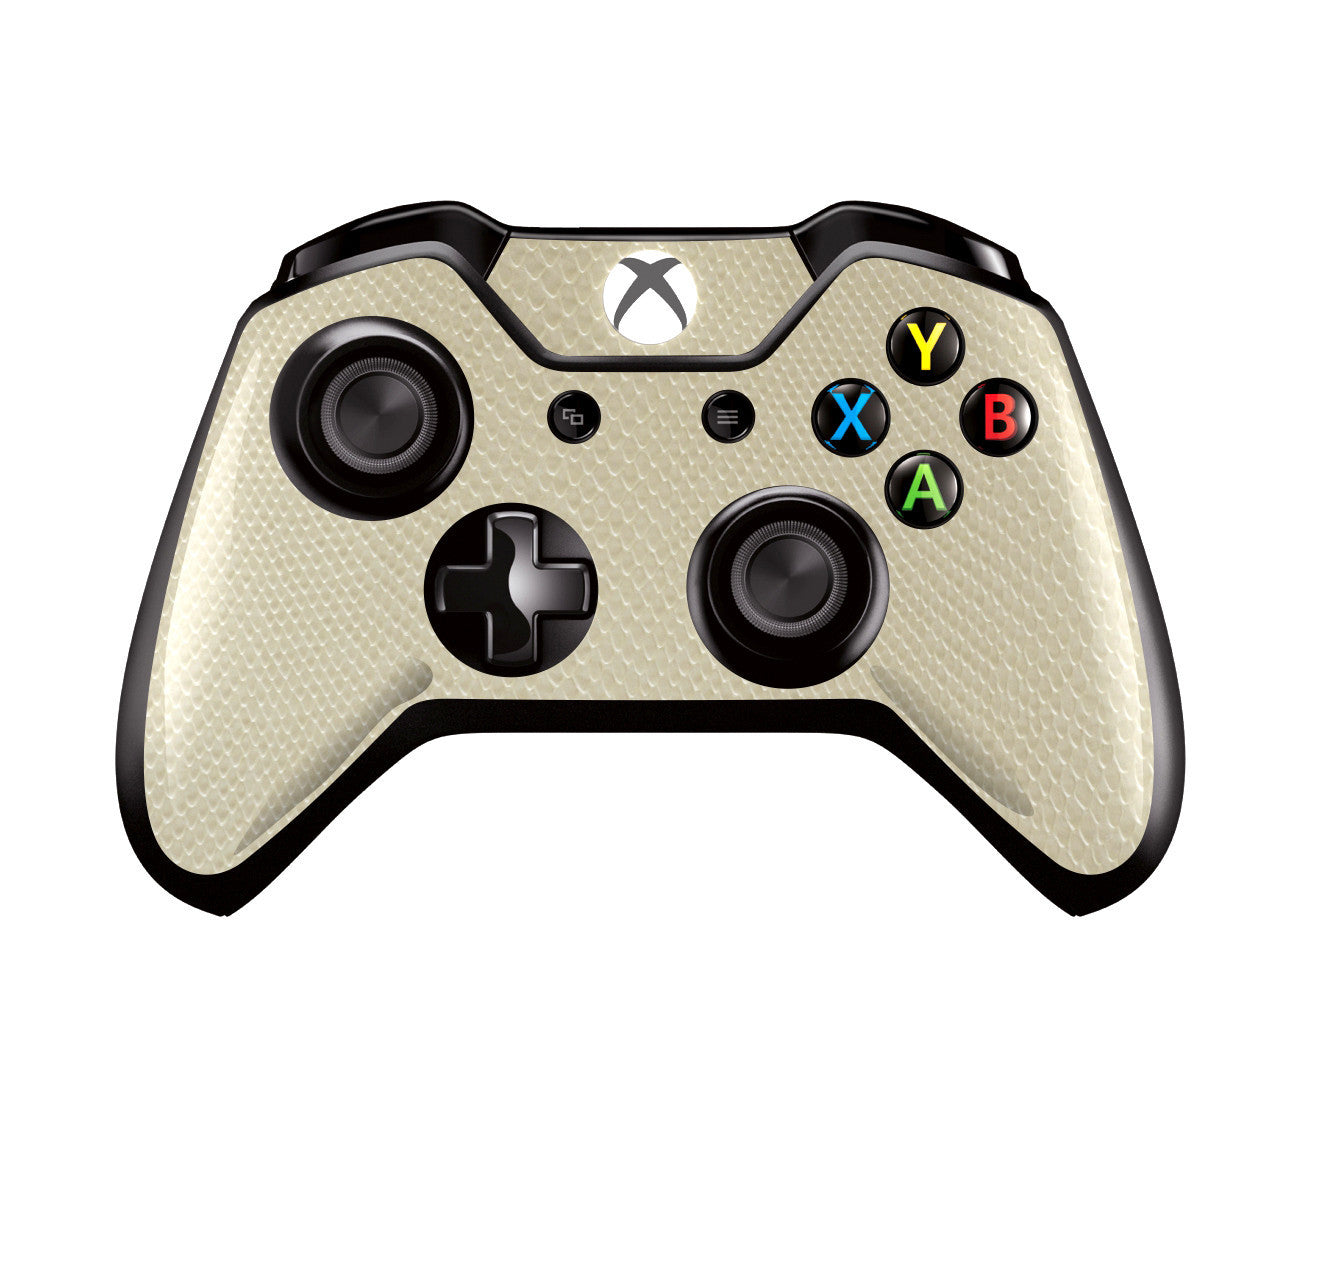 Xbox One Controller Beige 3D Textured MAMBA SNAKE Effect Skin Wrap Sticker Decal Protector Cover by EasySkinz